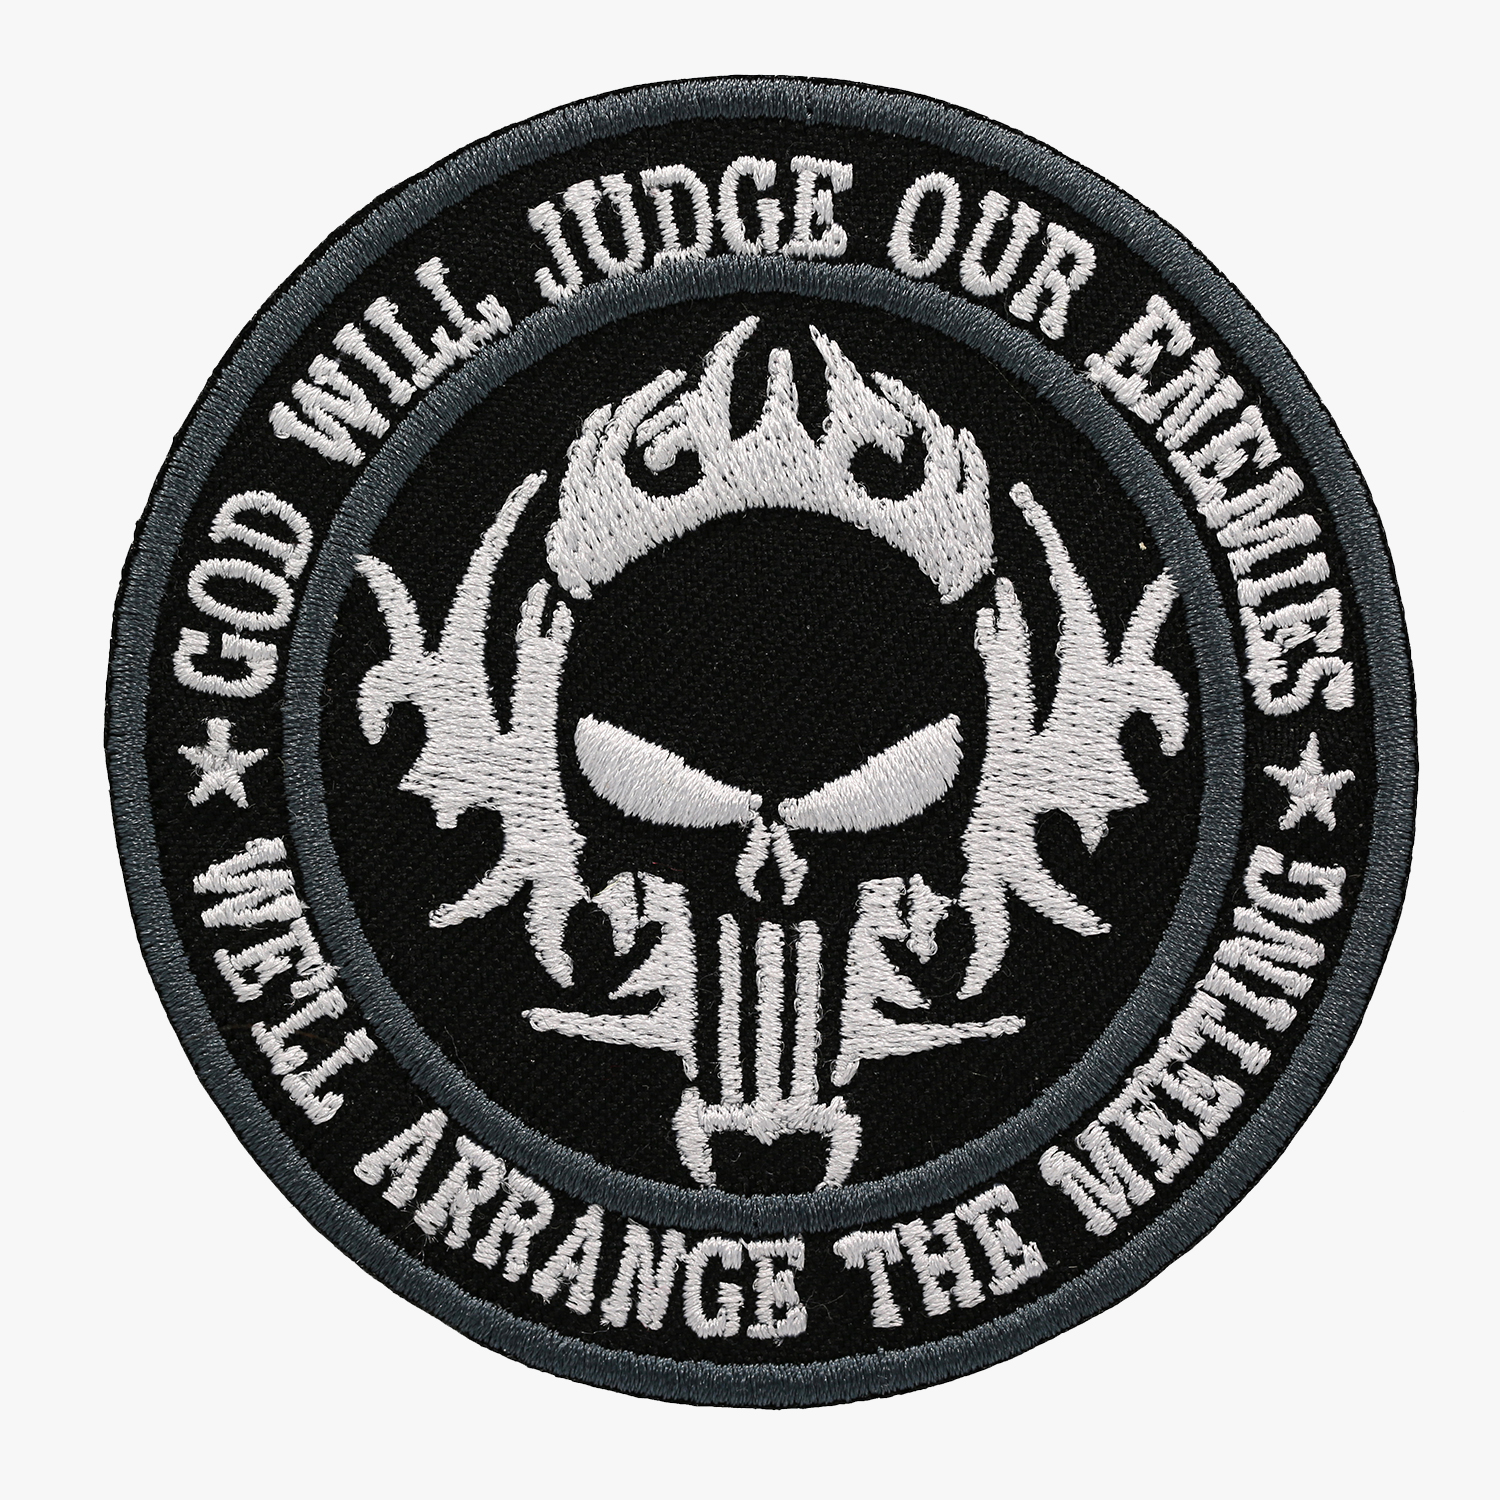 INFIDEL JUDGE ENEMY PUNISHER